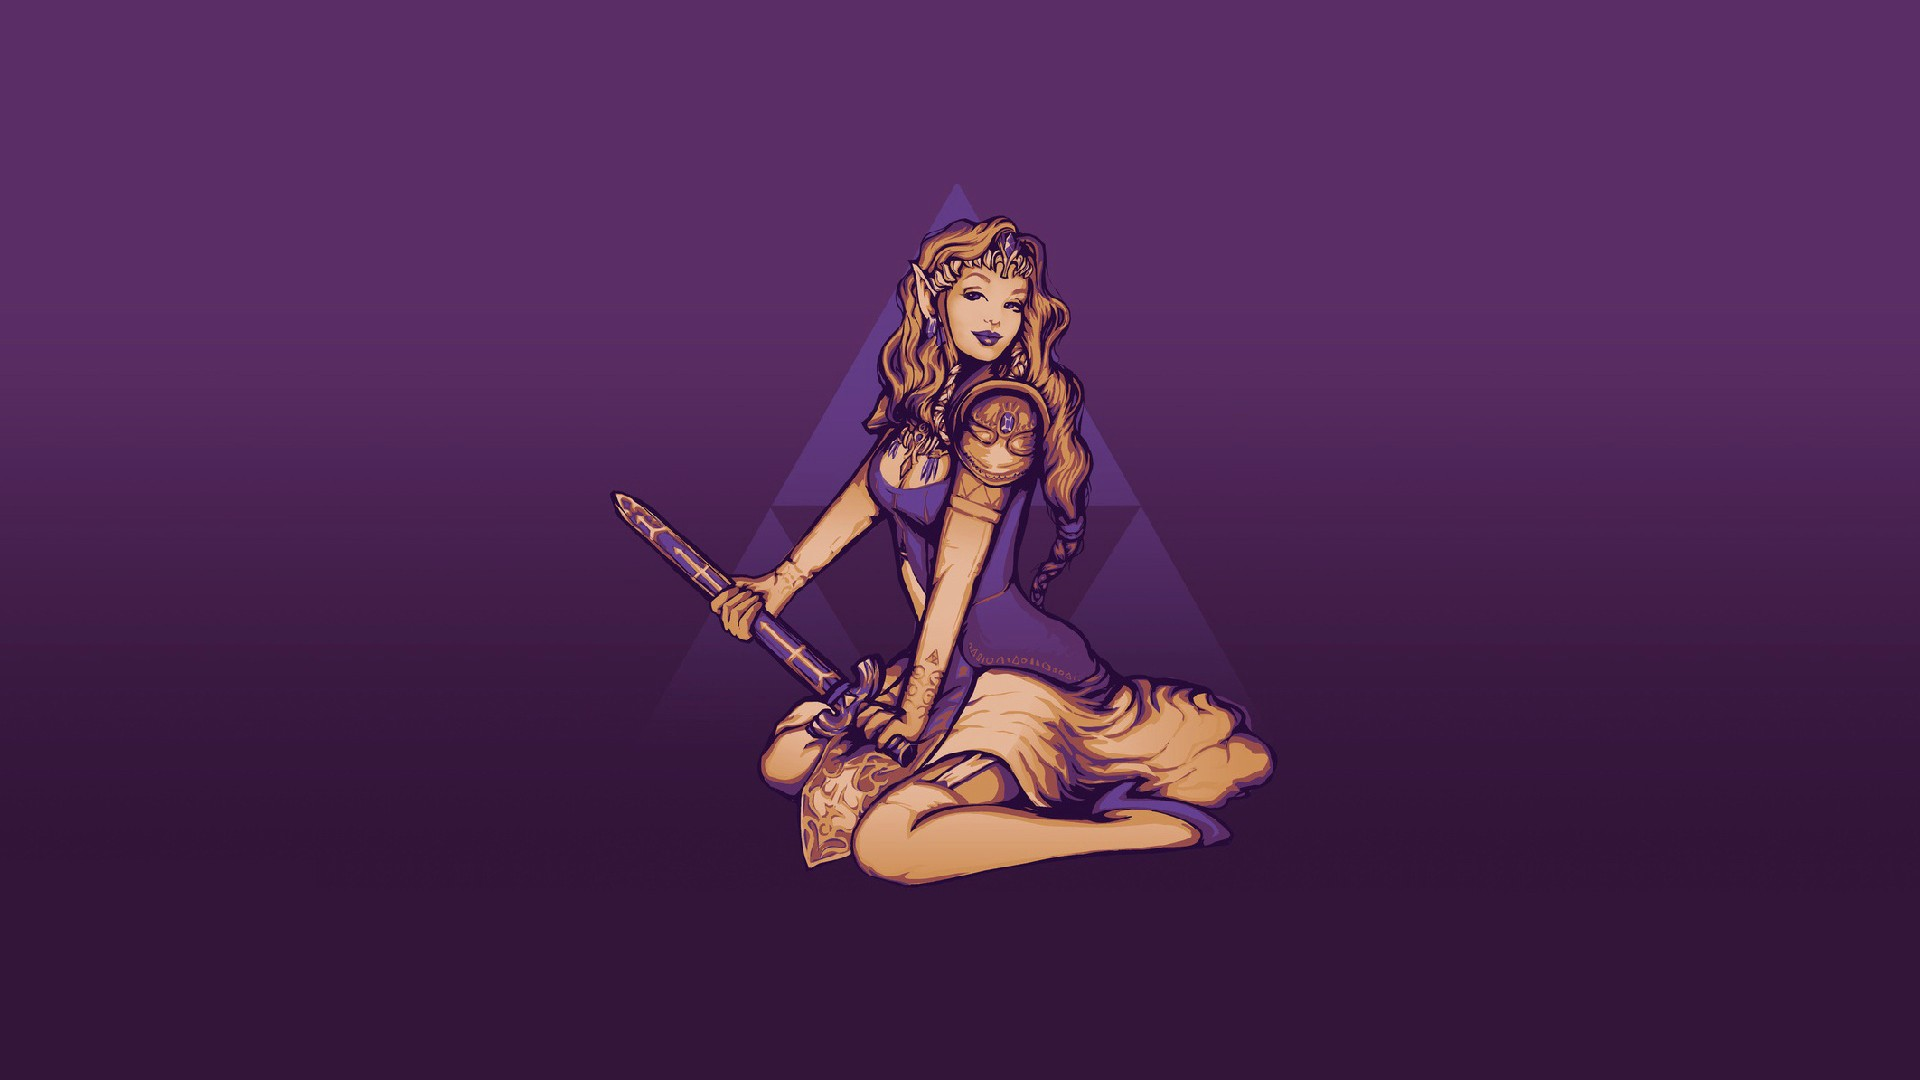 Hd wallpaper zelda - Video Game Zelda Wallpaper